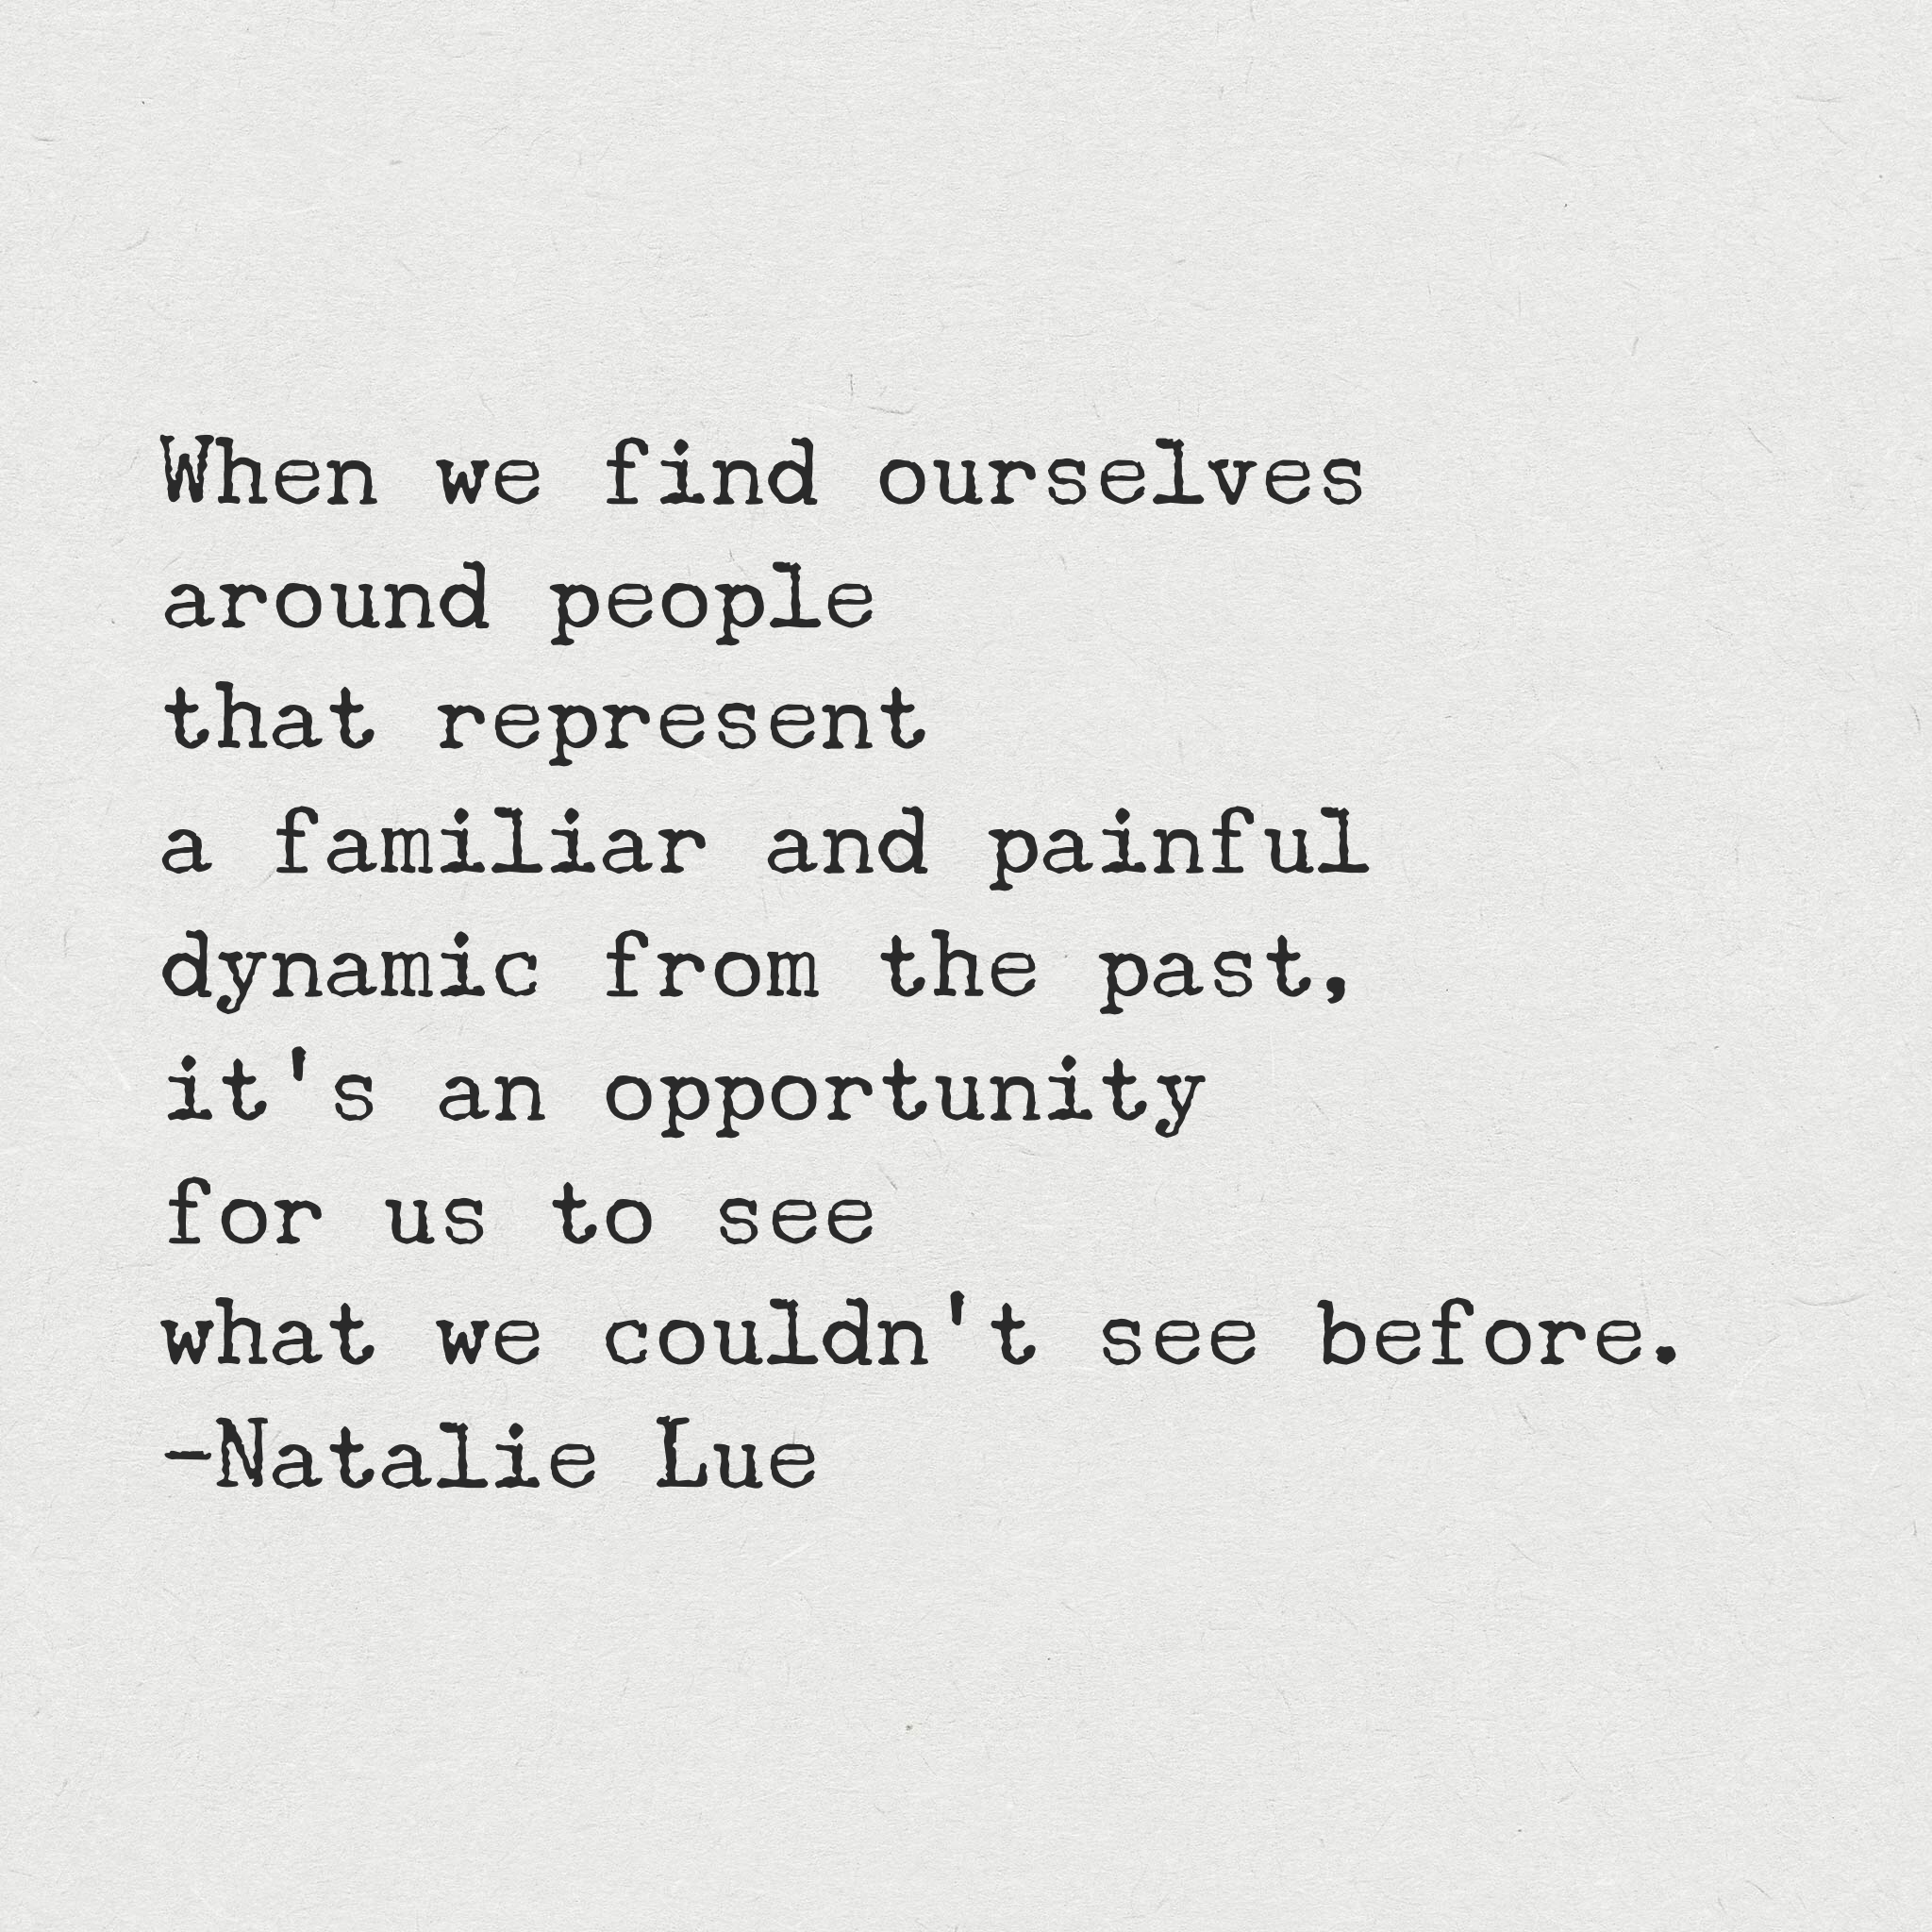 When we find ourselves around people that represent a familiar and painful dynamic from the past, it's an opportunity for us to see what we couldn't see before.